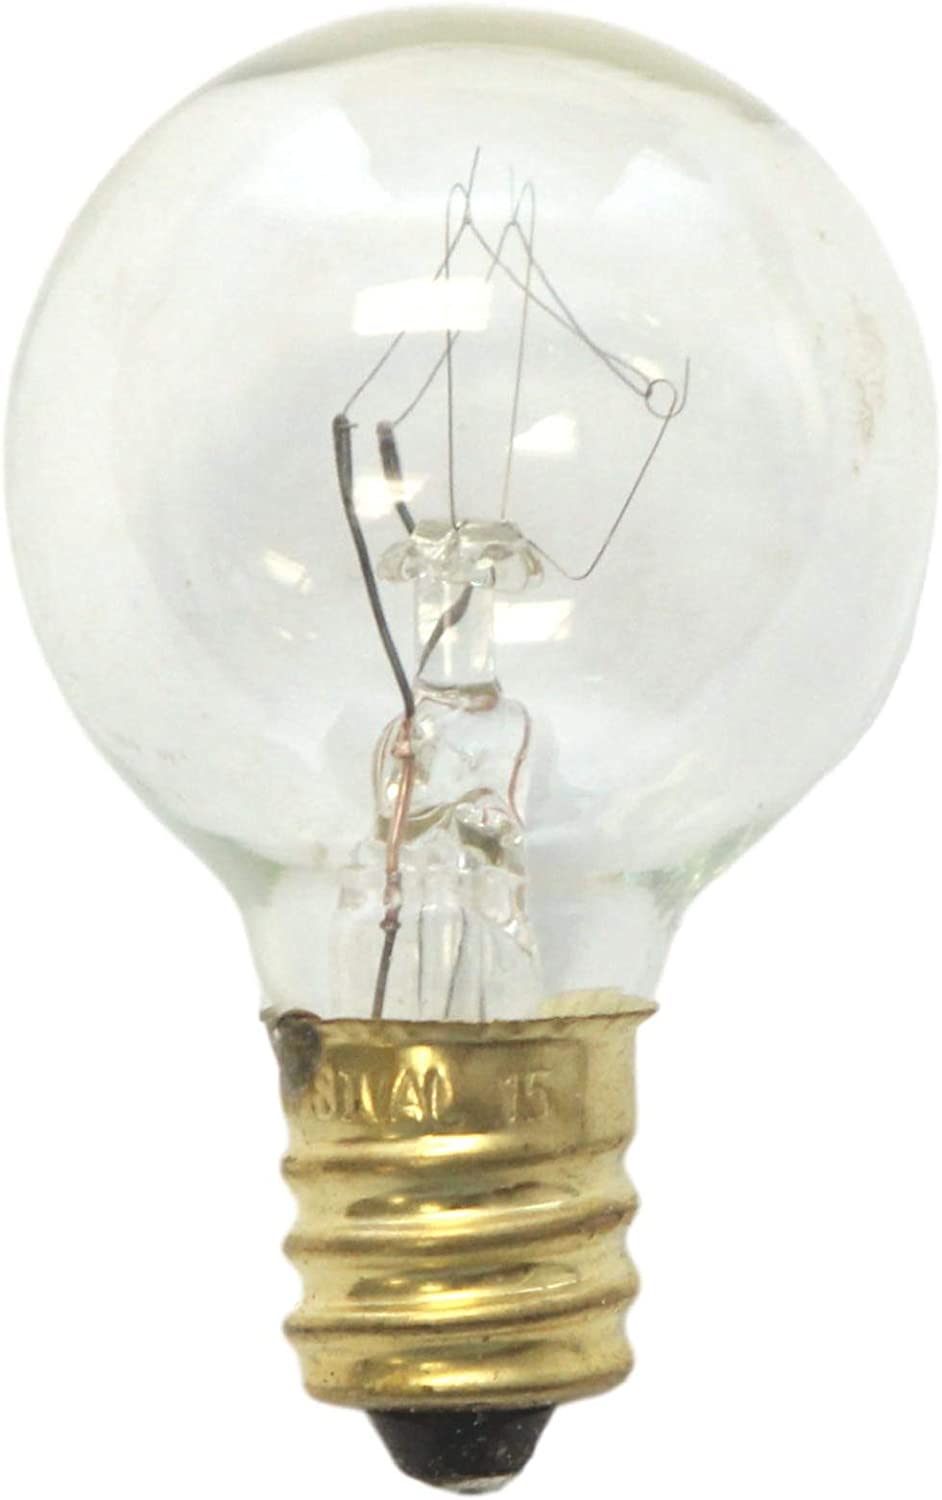 25 Pack NEW Replacement Light Bulbs 5W 120V E-12 Candelabra Base C7 Clear